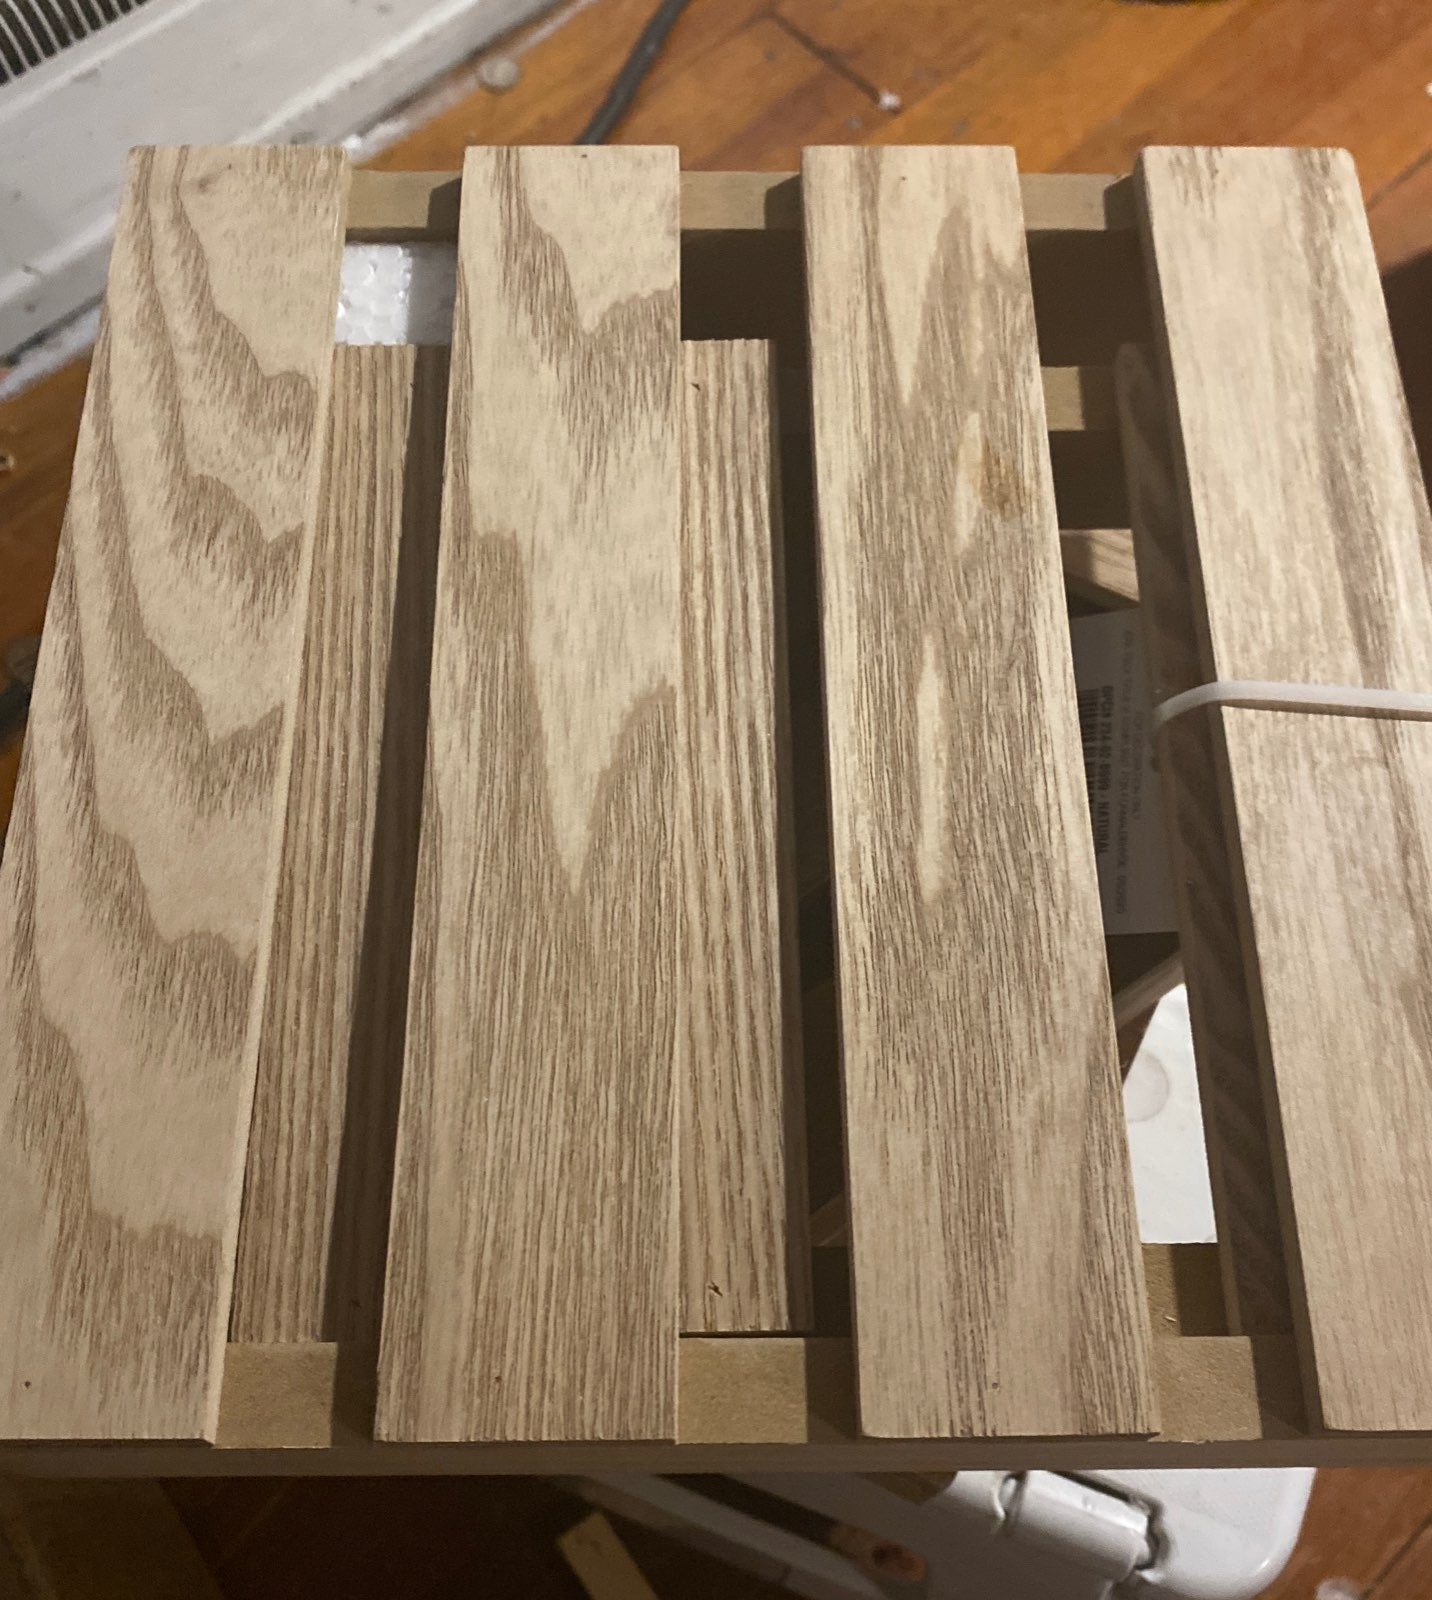 Two tarrget wooden risers